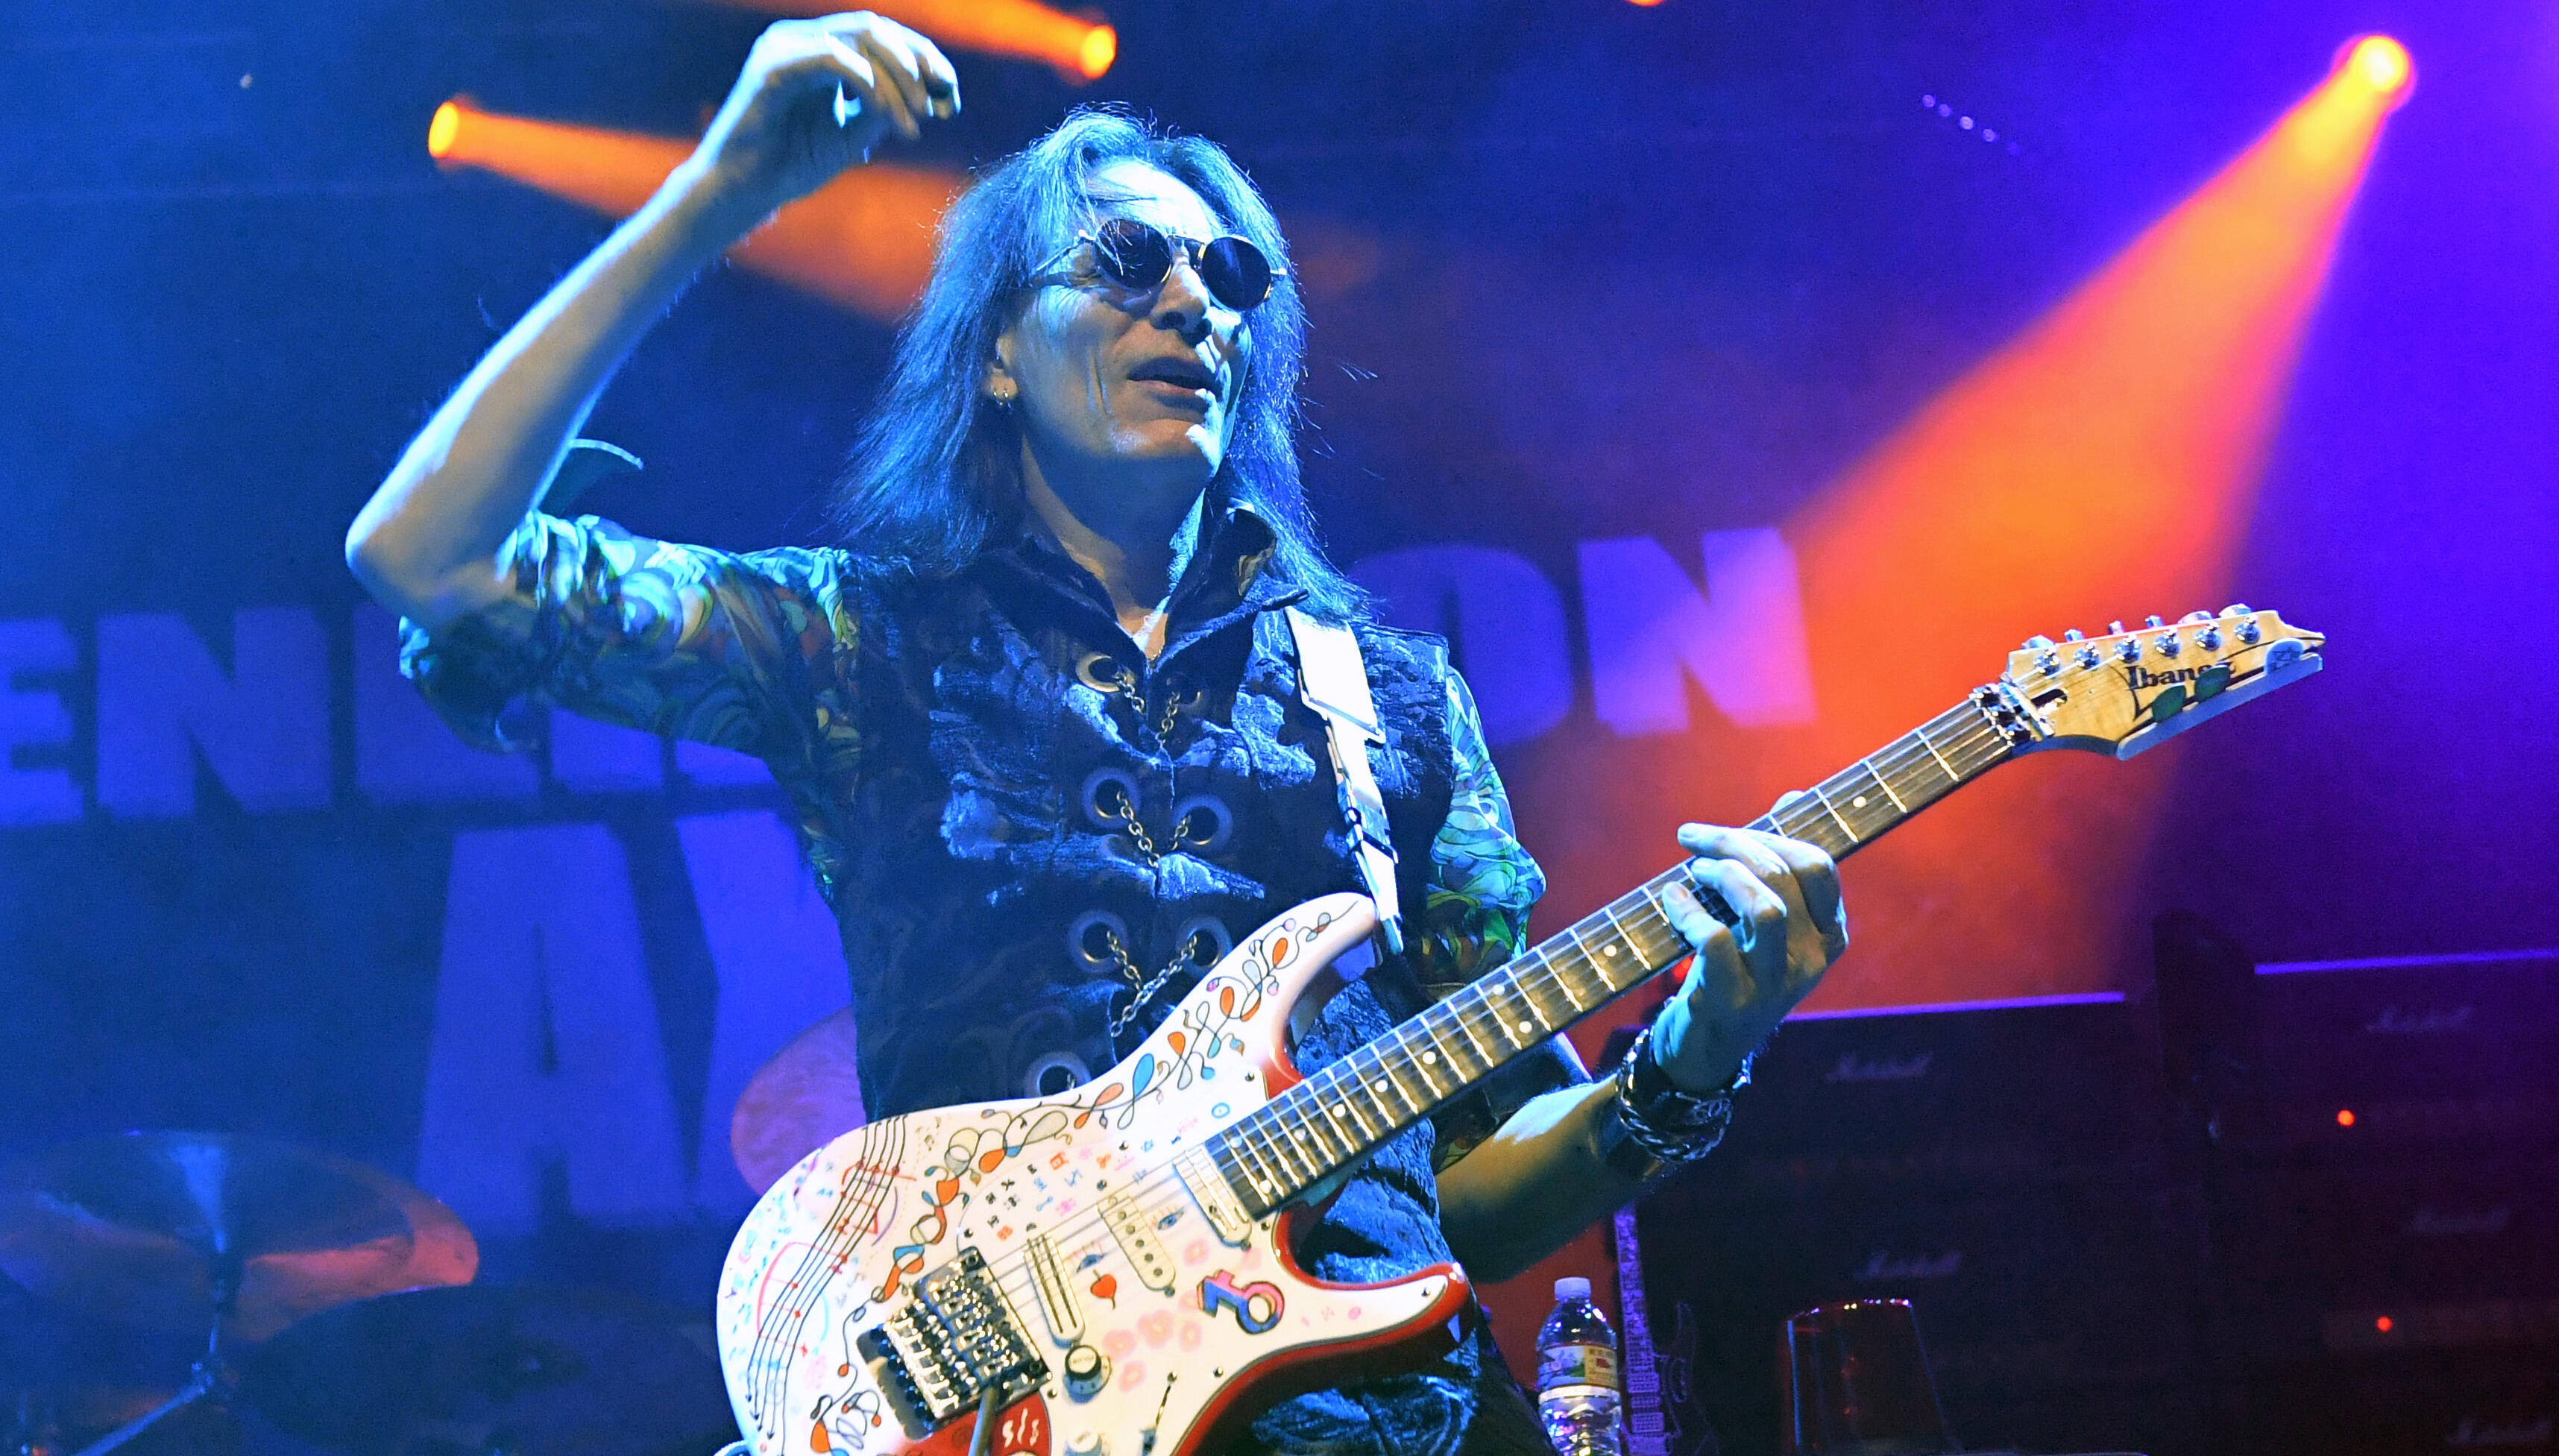 Steve Vai Explains Why He Doesn't Collect Guitars